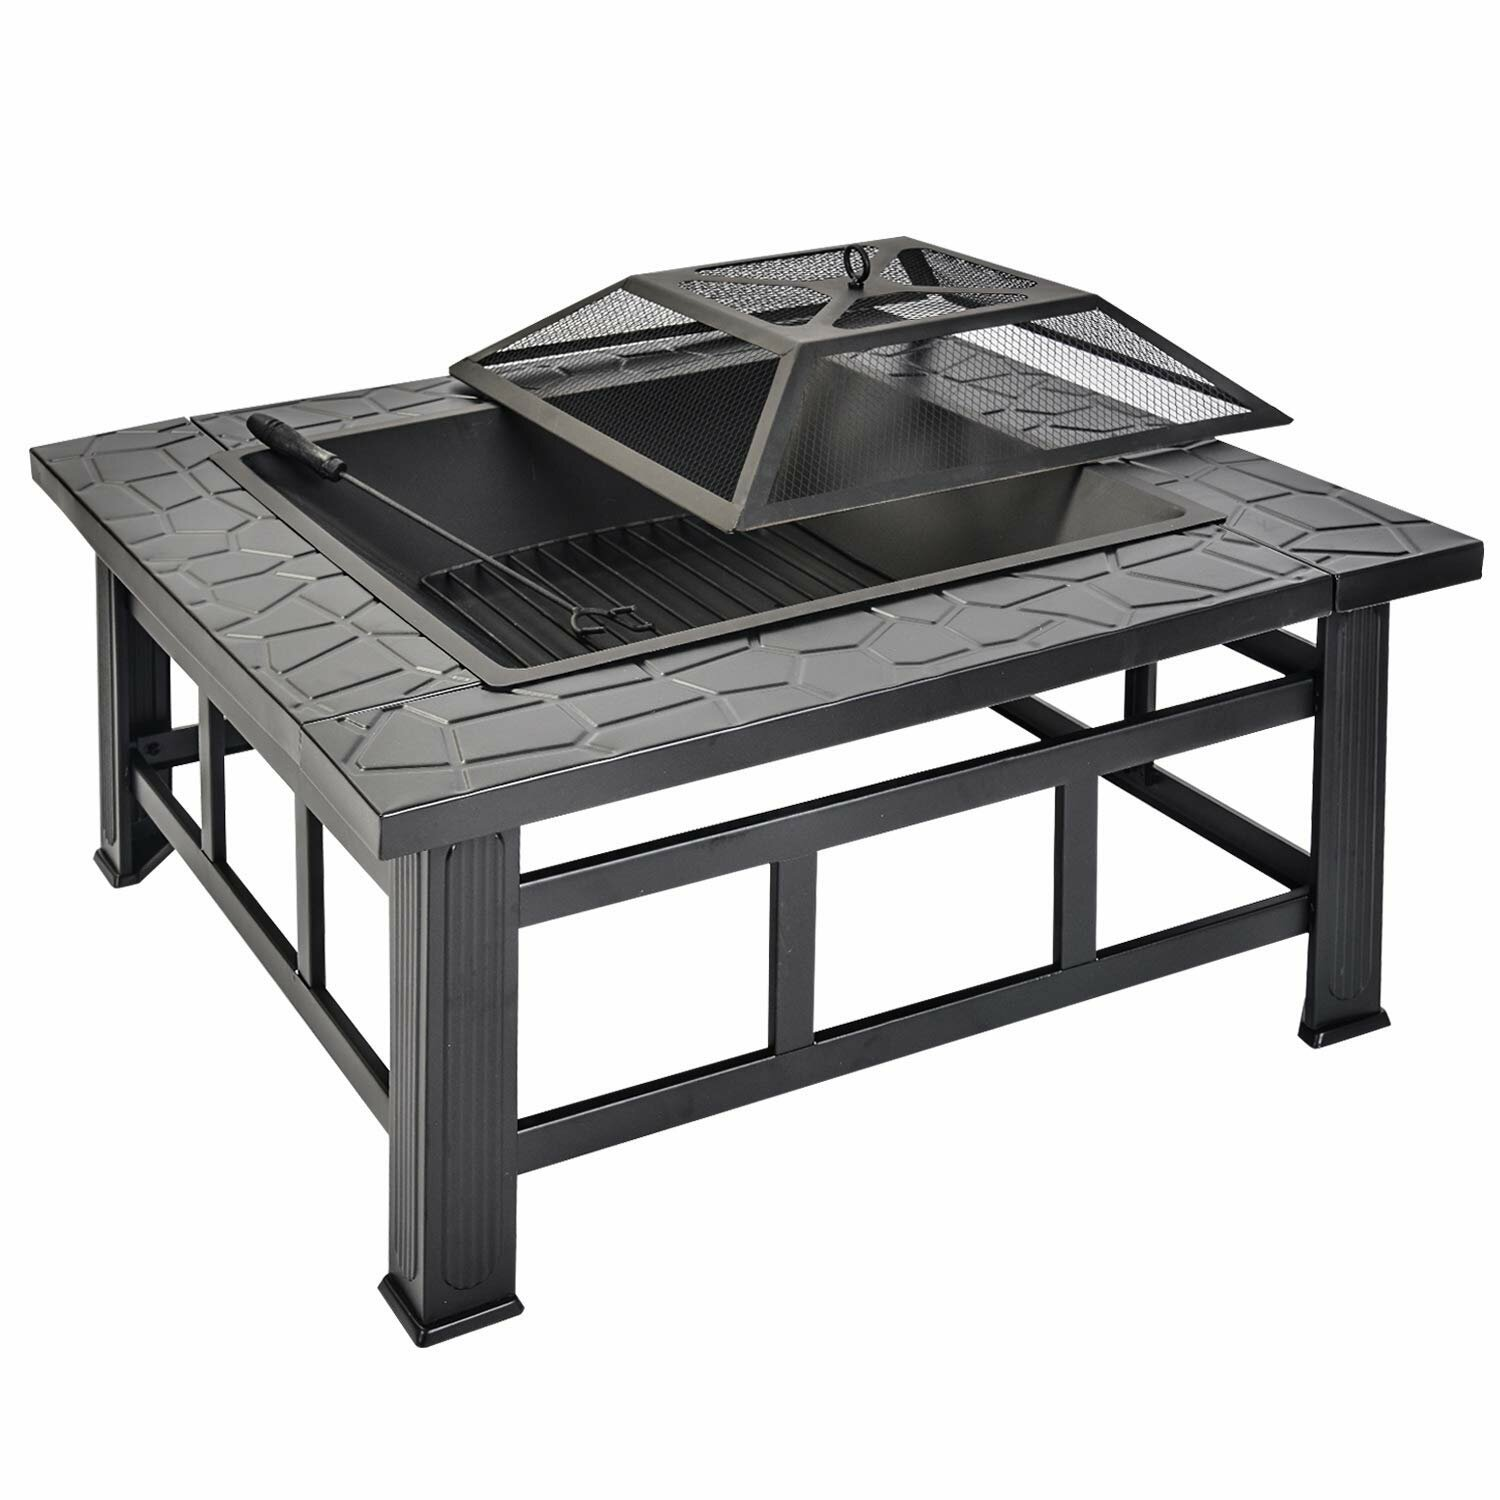 Sol 72 Outdoor Elora Garden And Patio Charcoal Fire Pit Table